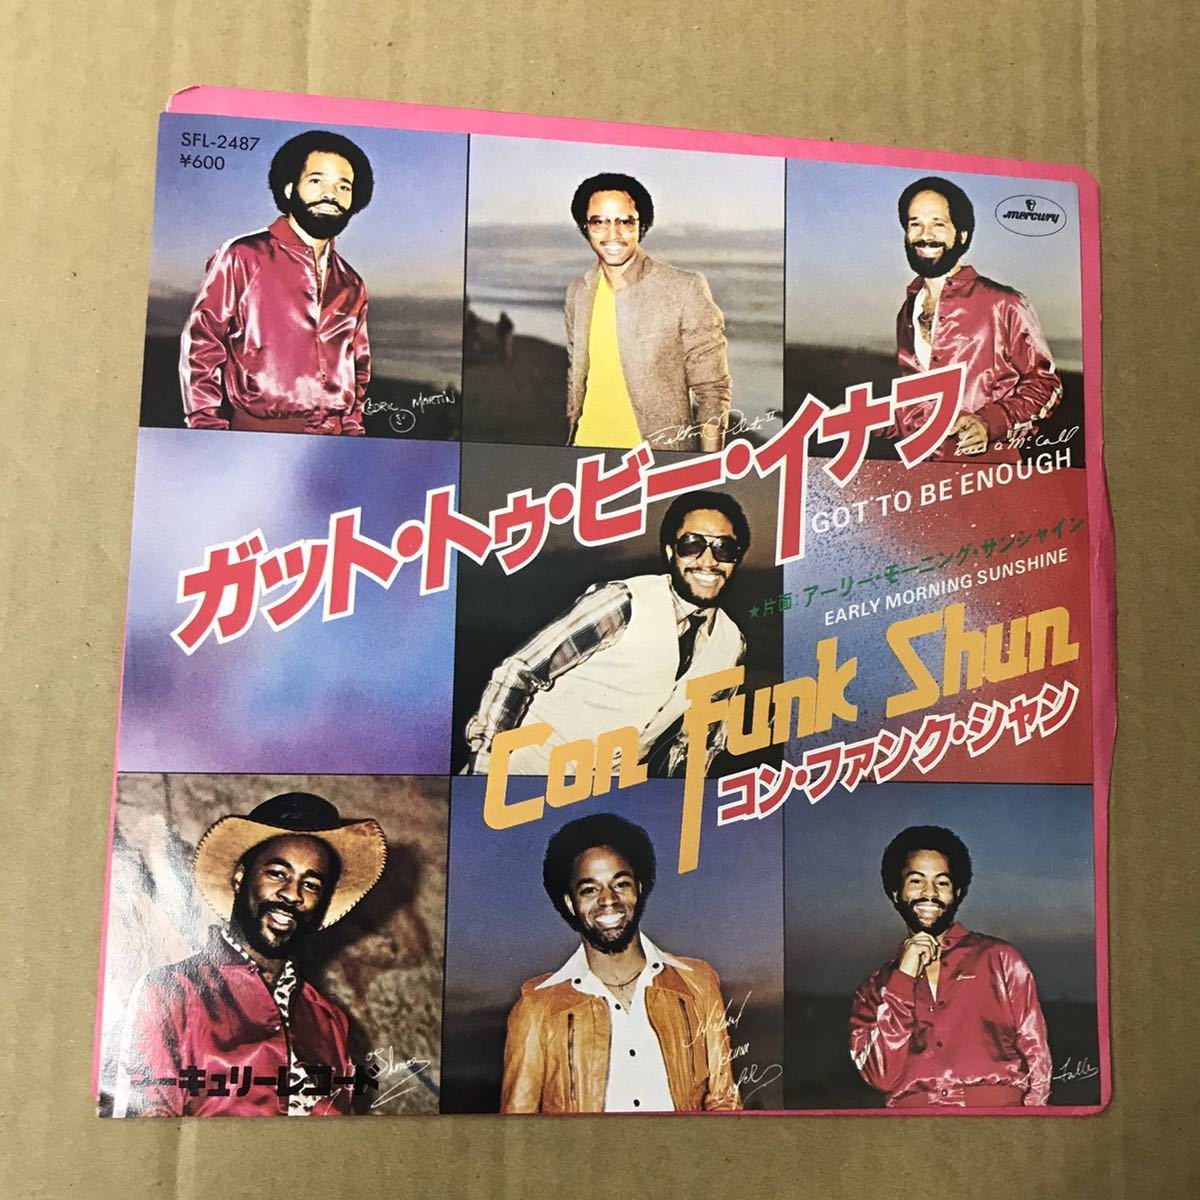 Con Funk Shun 7inch Got to be enough early morning sunshine コンファンクシャン 7インチ_画像1